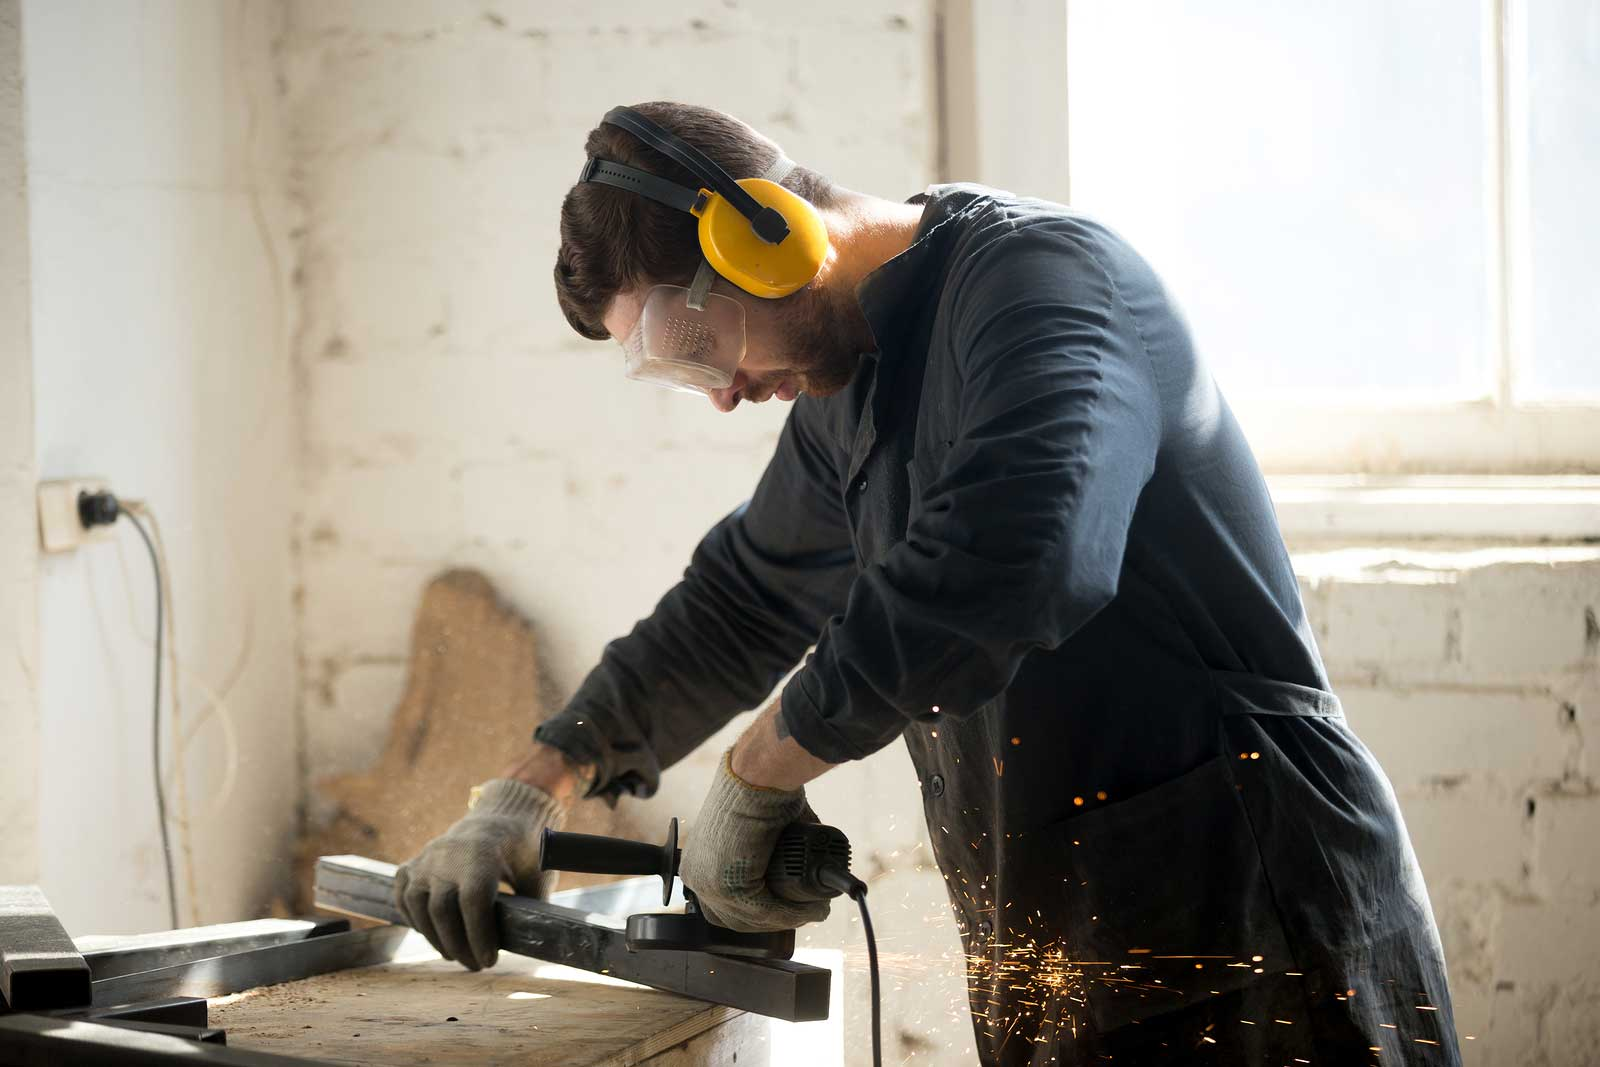 Man works on home improvement project with power tools.